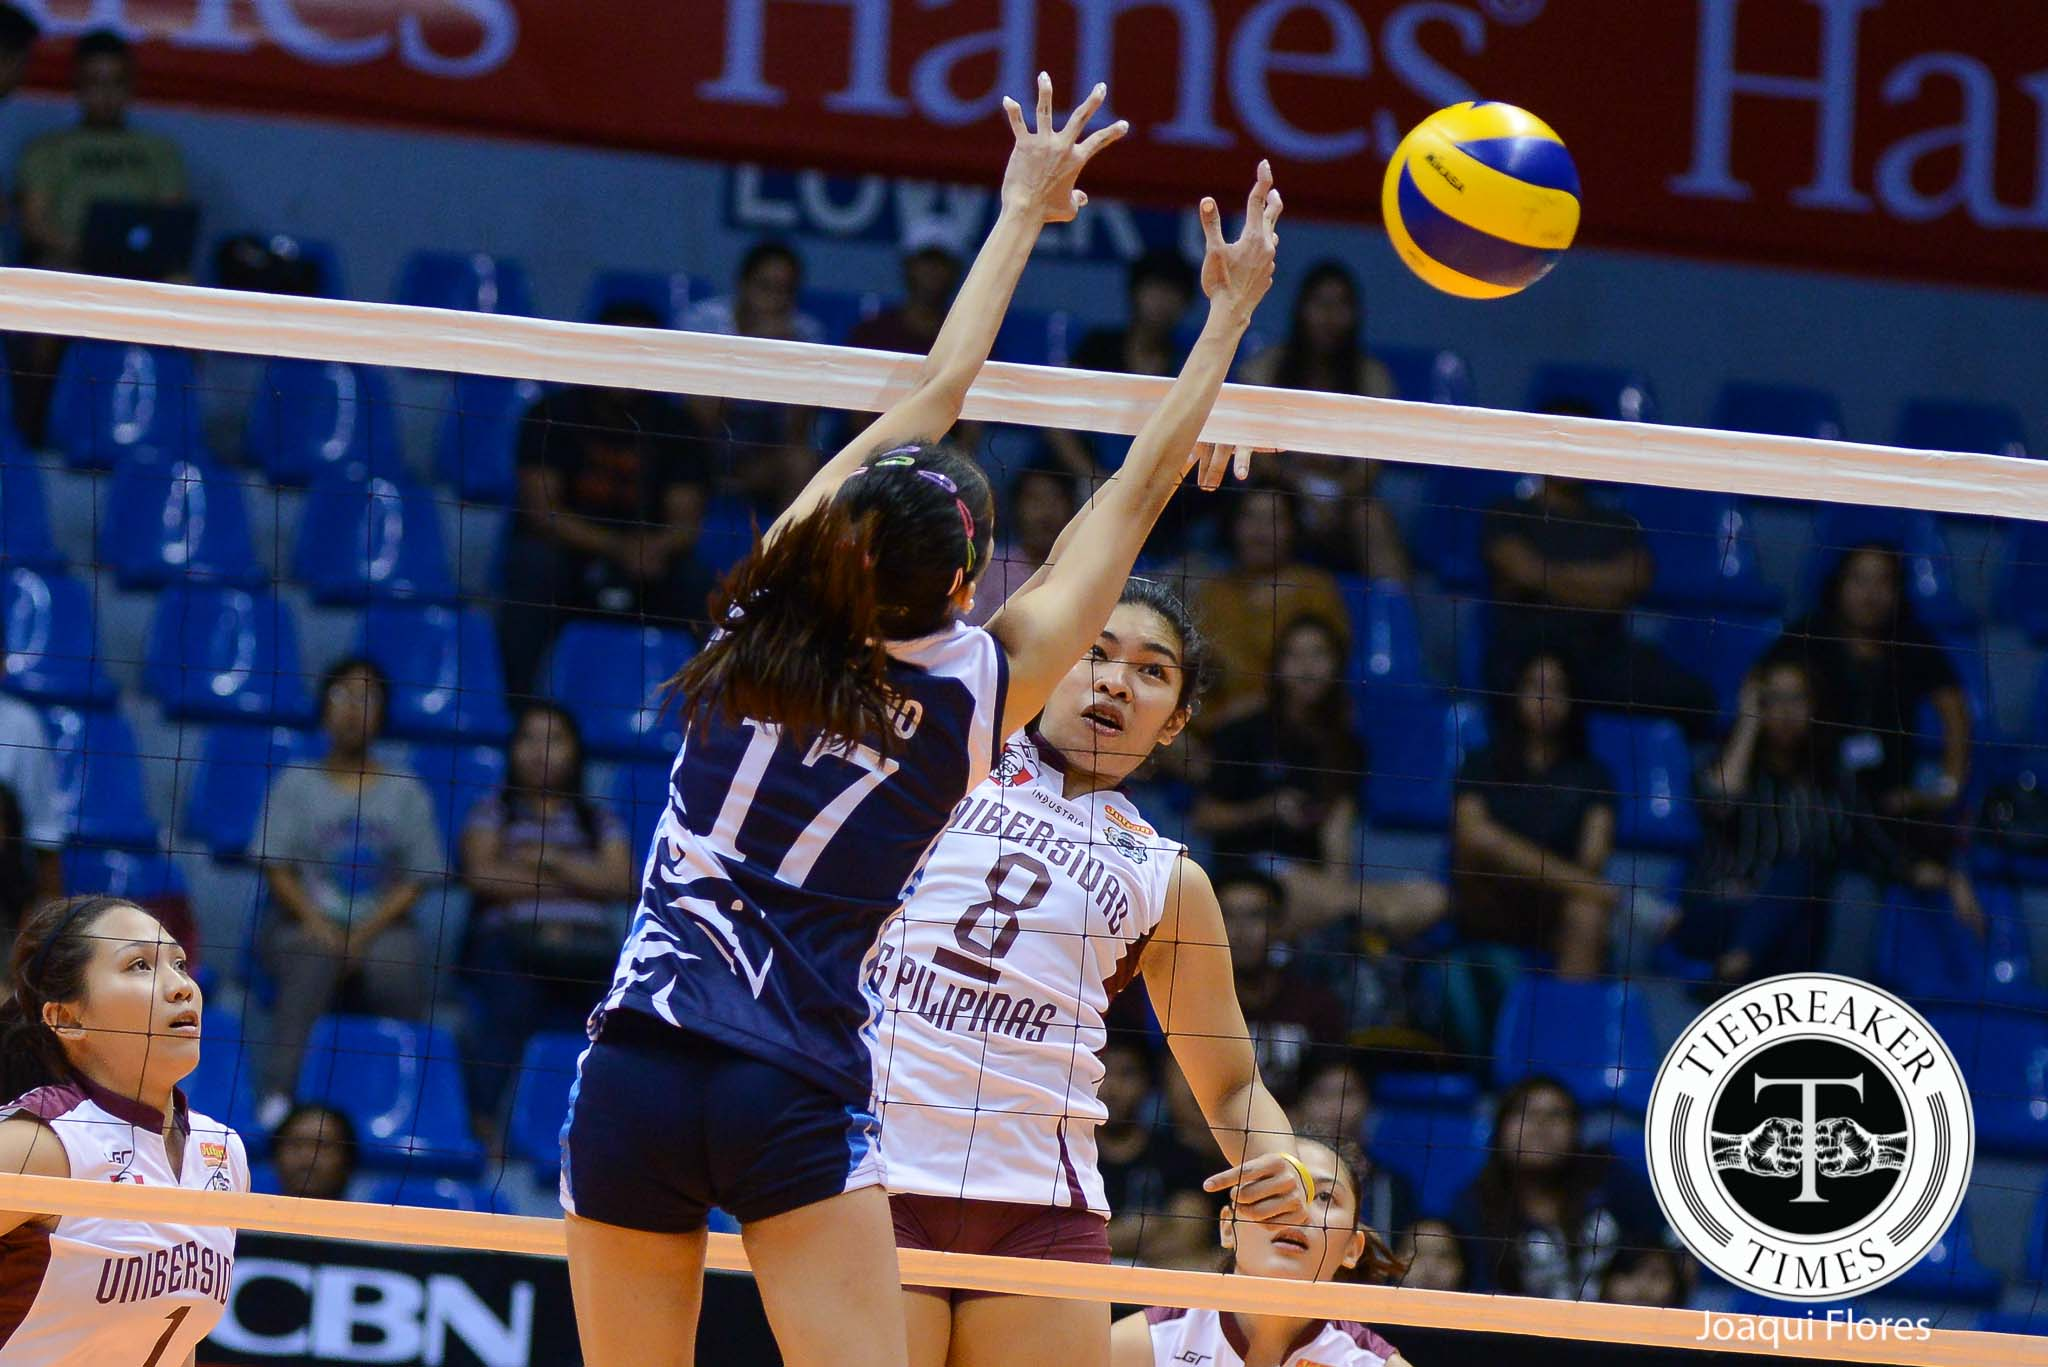 Tiebreaker Times Lady Maroons snap skid at free-falling Lady Falcons' expense AdU News UAAP UP Volleyball  UP Lady Maroons UAAP Season 78 Volleyball UAAP Season 78 Nicole Tiamzon Mylene Paat May Roque Marian Buitre Kathy Bersola Justine Dorog Jerry Yee Jema Galanza Isa Molde Adamson Lady Falcons